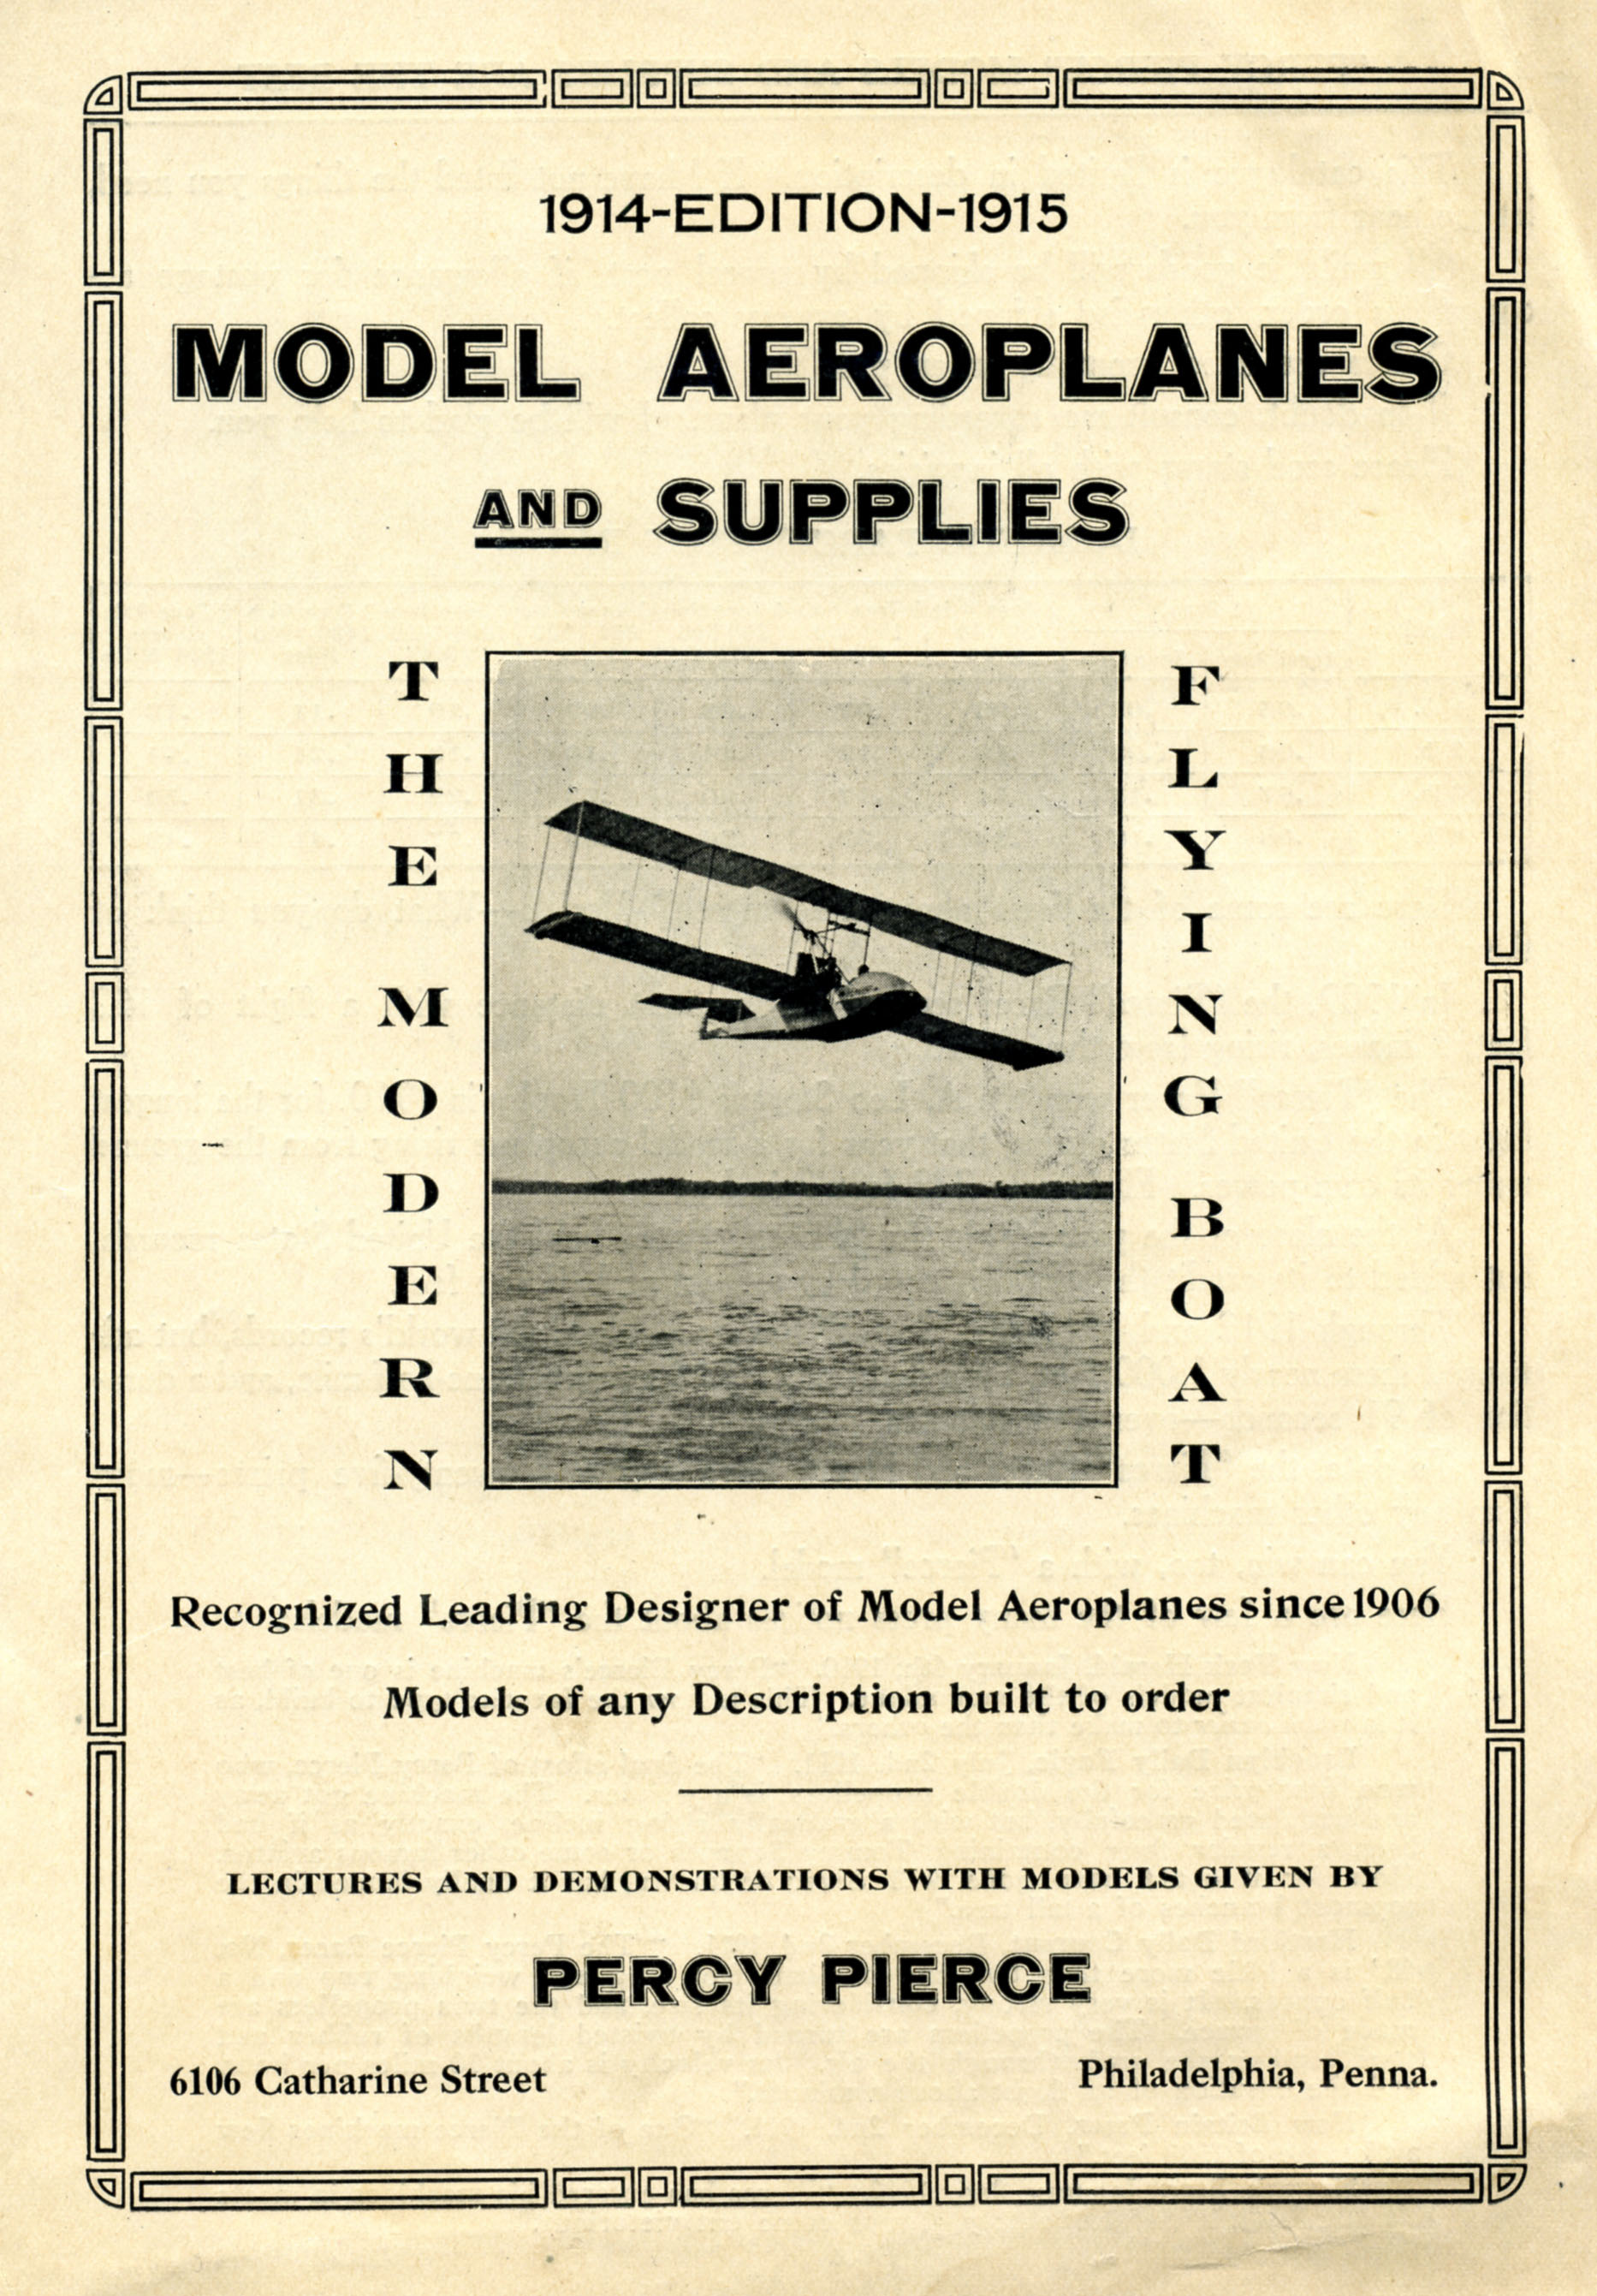 Catalog, Model Aeroplanes and Supplies, 1914-1915. (Source: National Model Aviation Museum Archives, Michael Fulmer Collection #0158)